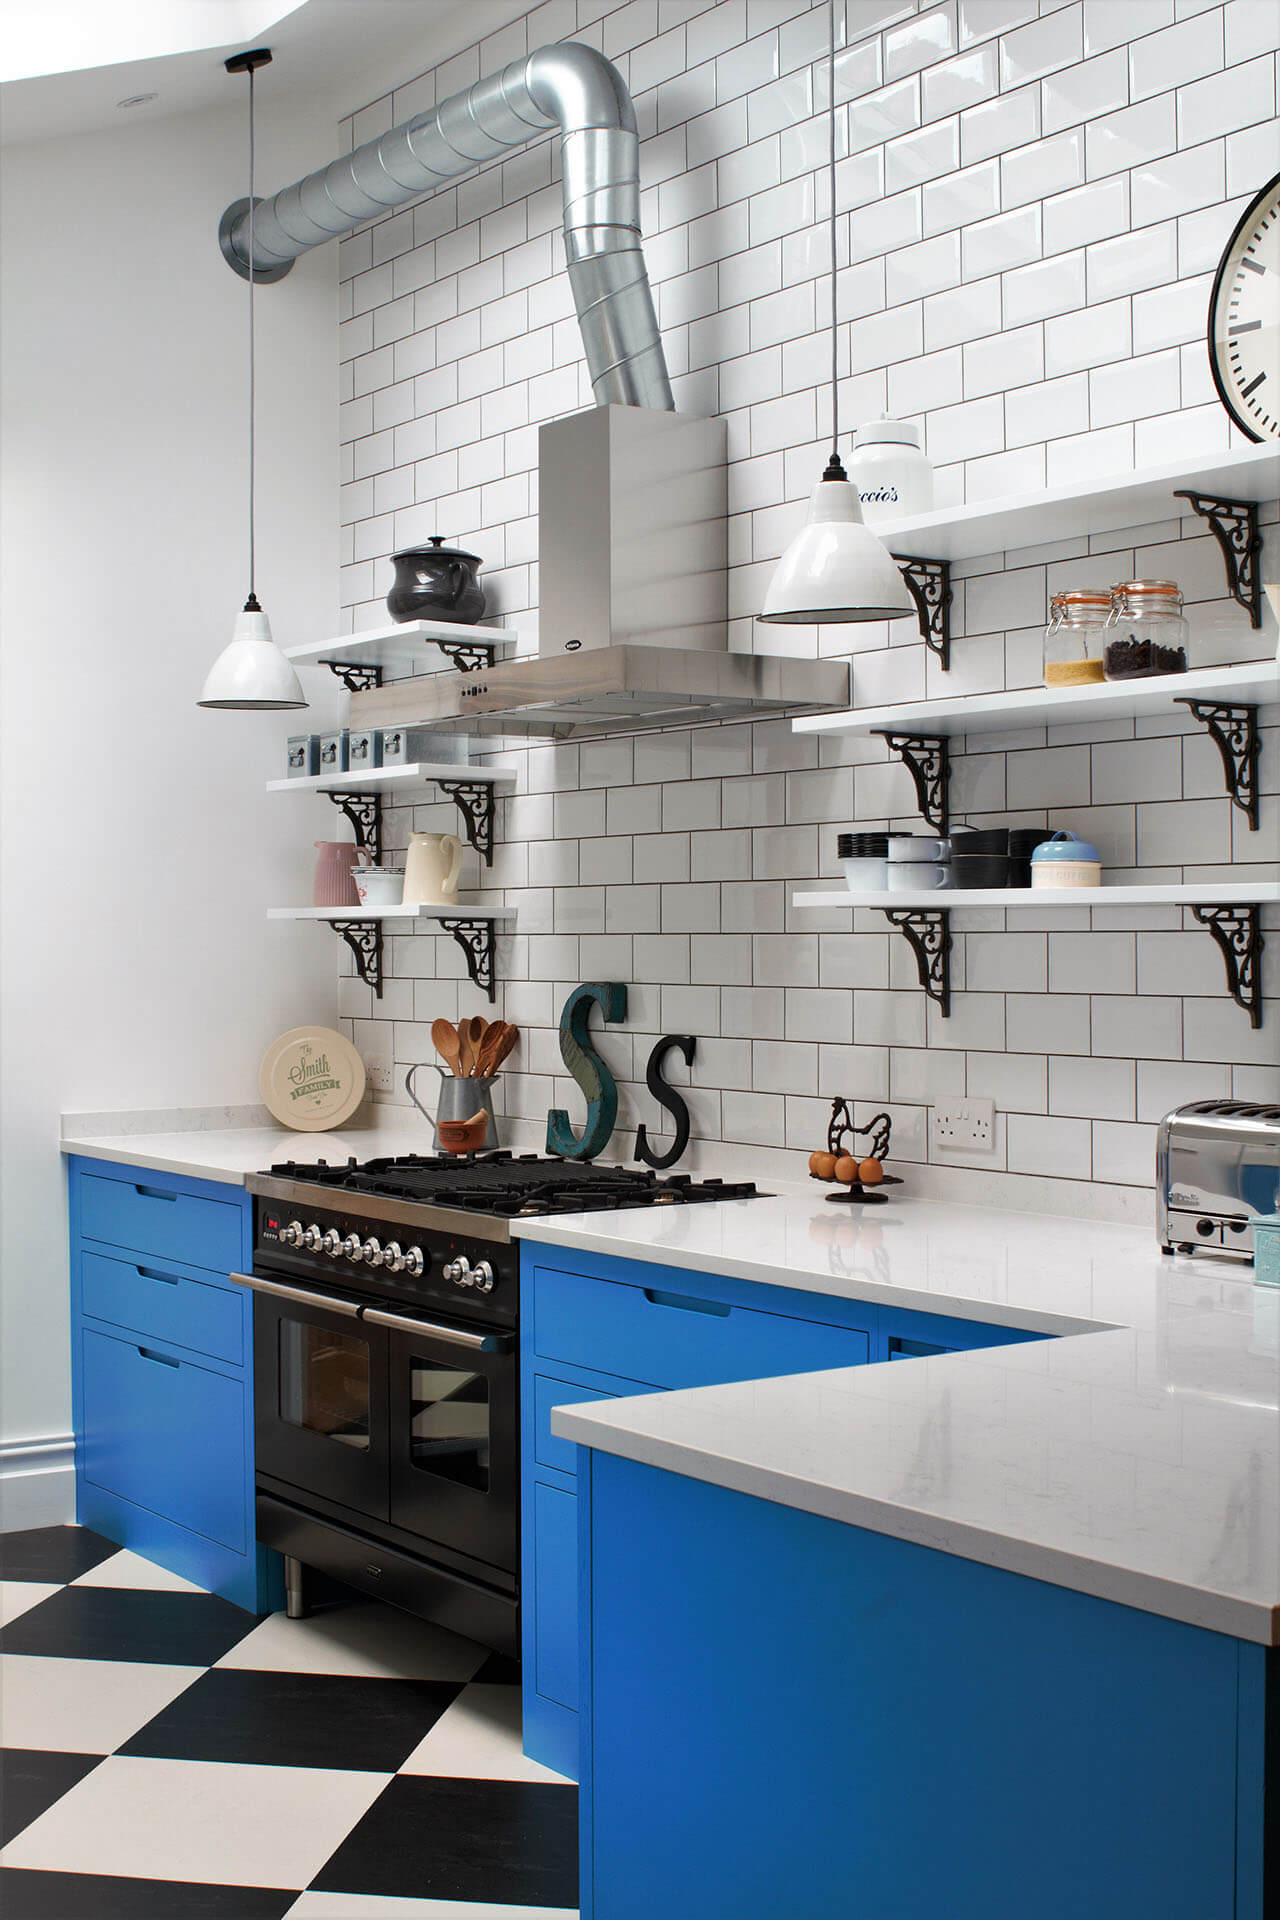 AMERICAN DINER-STYLE INDUSTRIAL KITCHEN